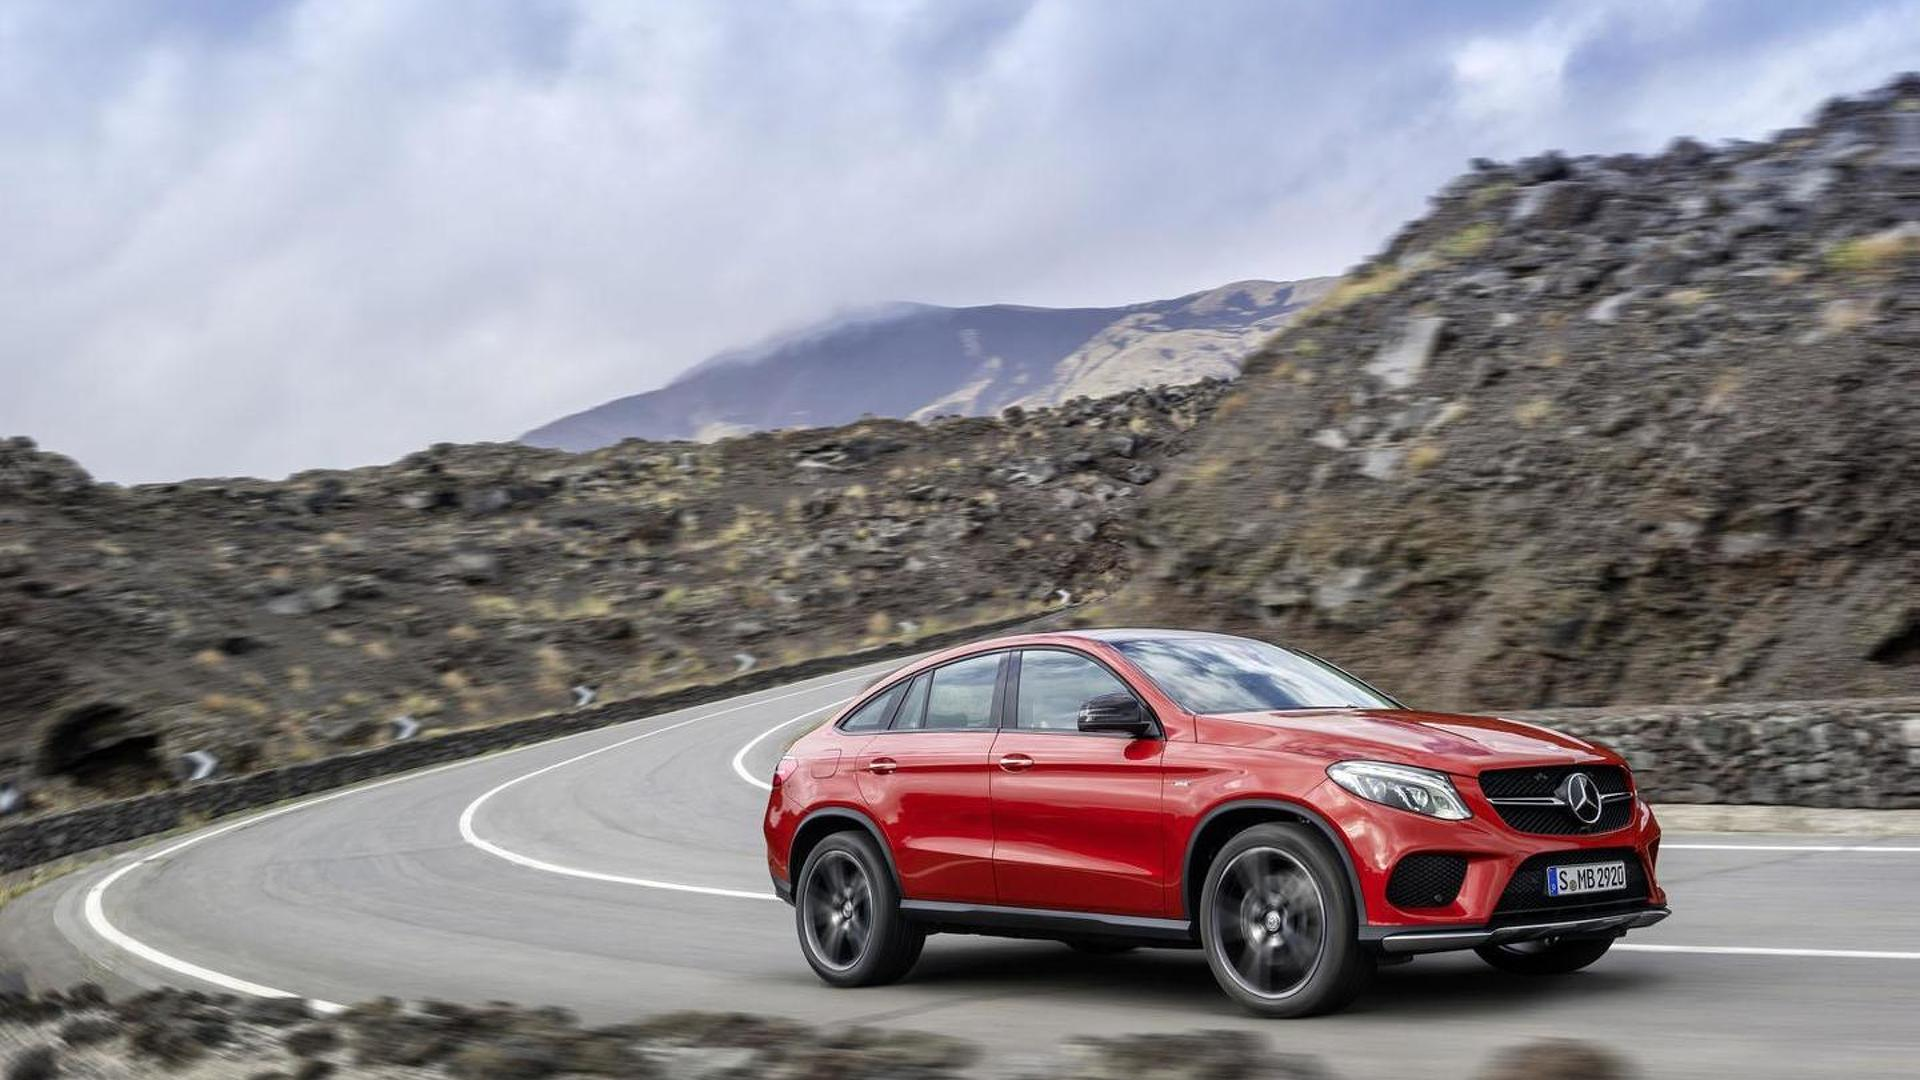 Mercedes benz gle coupe news and reviews for Mercedes benz gle coupe for sale